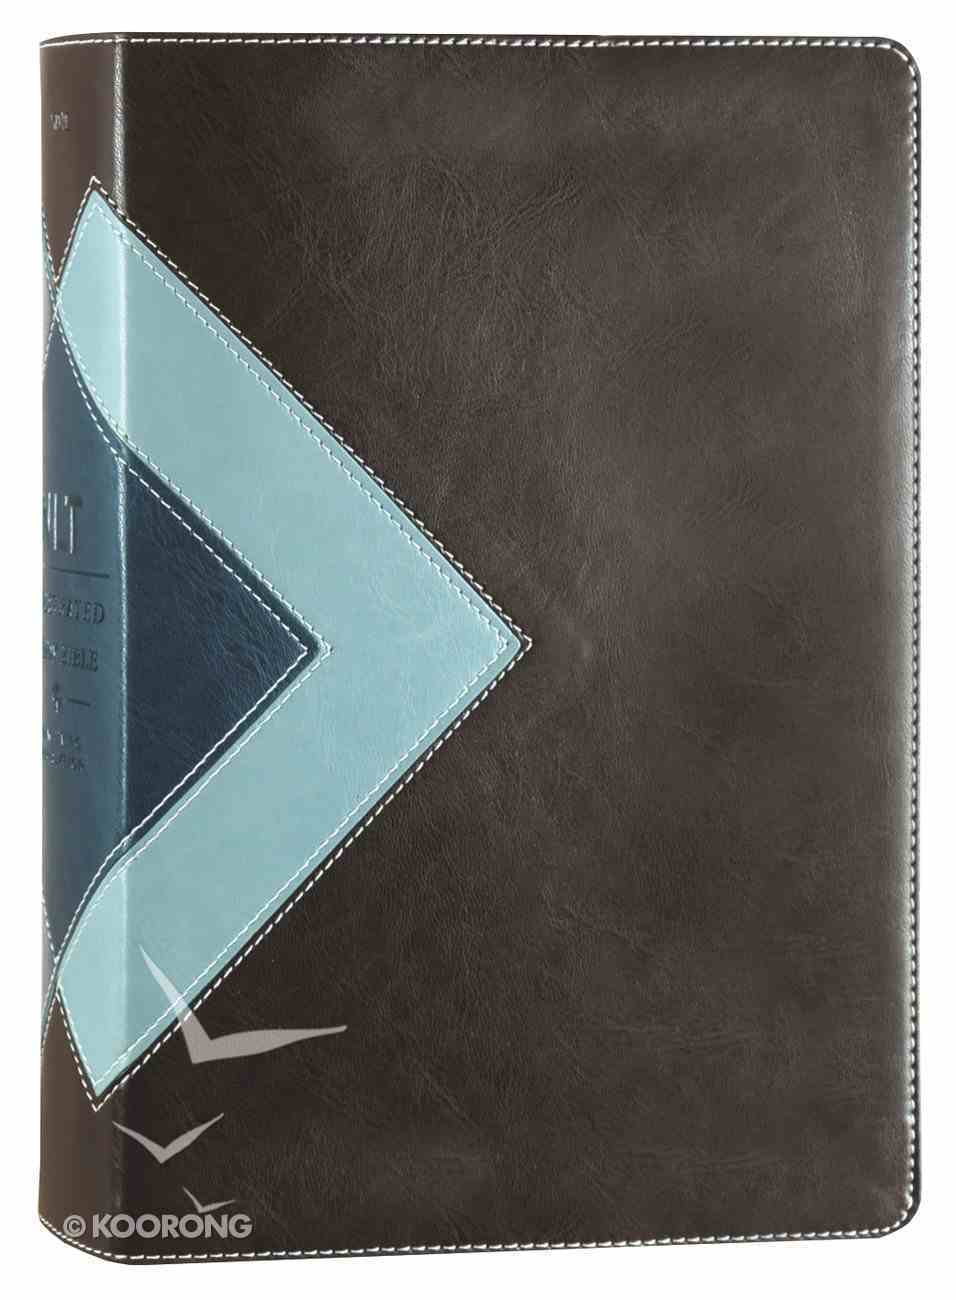 NLT Illustrated Study Bible Teal/Brown (Black Letter Edition) Imitation Leather